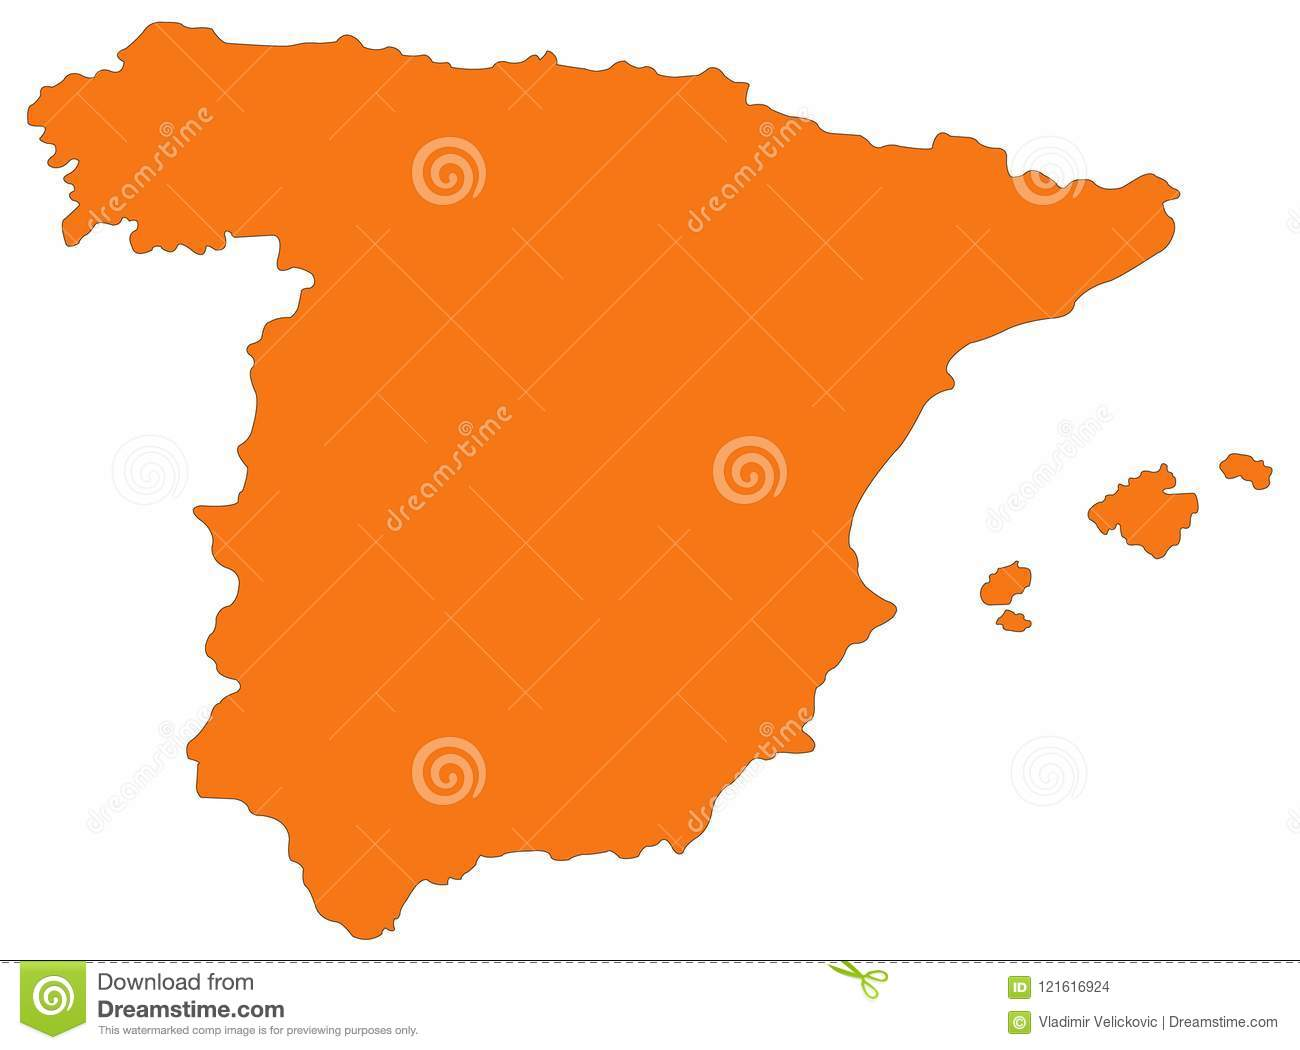 Spain Map Sovereign State On The Iberian Peninsula In Europe Stock